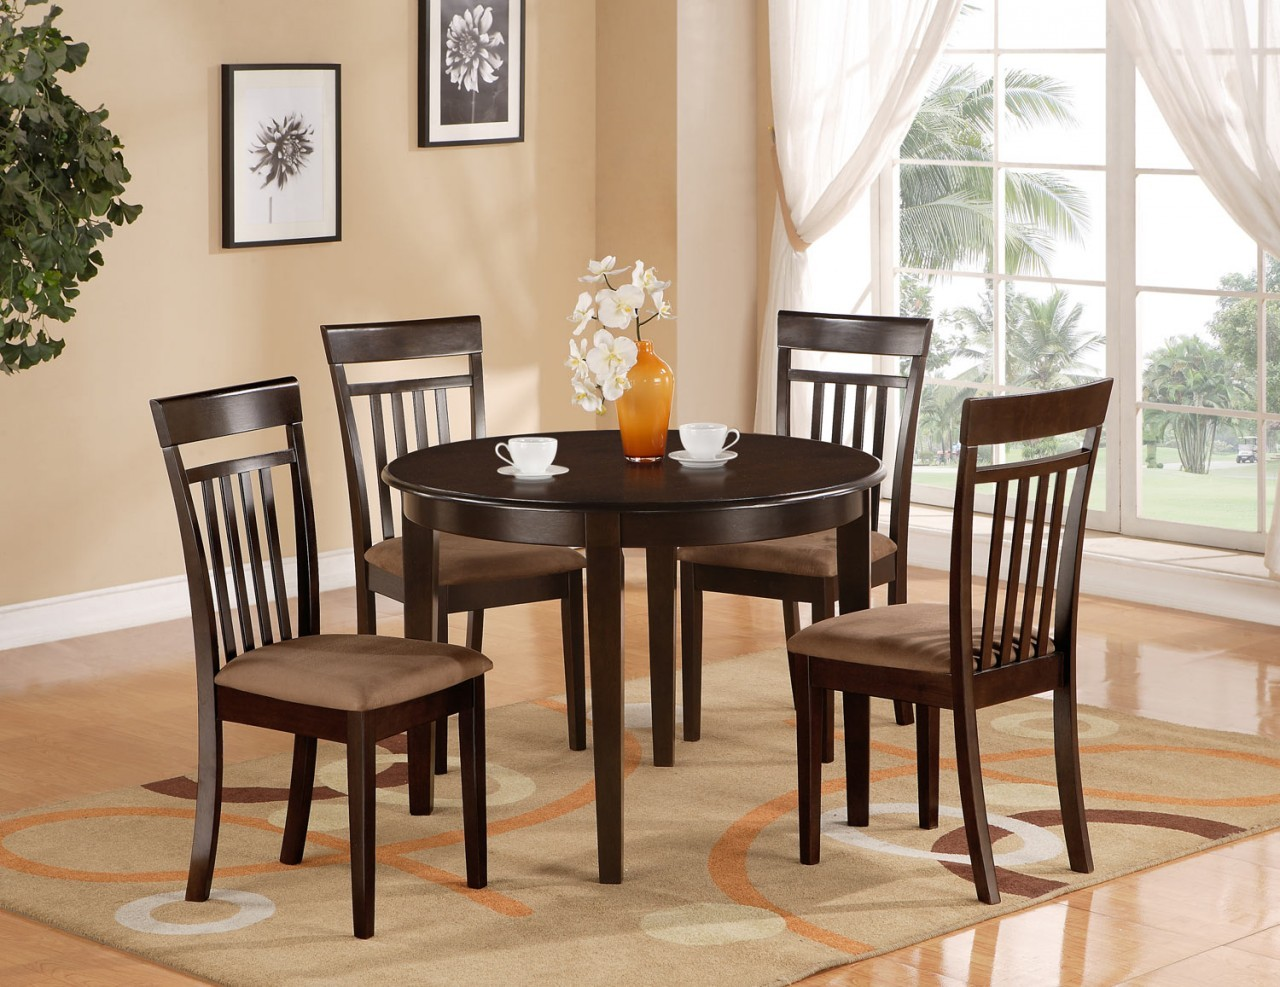 kitchen dining sets comfortable kitchen chairs Kitchen dining sets Photo 4